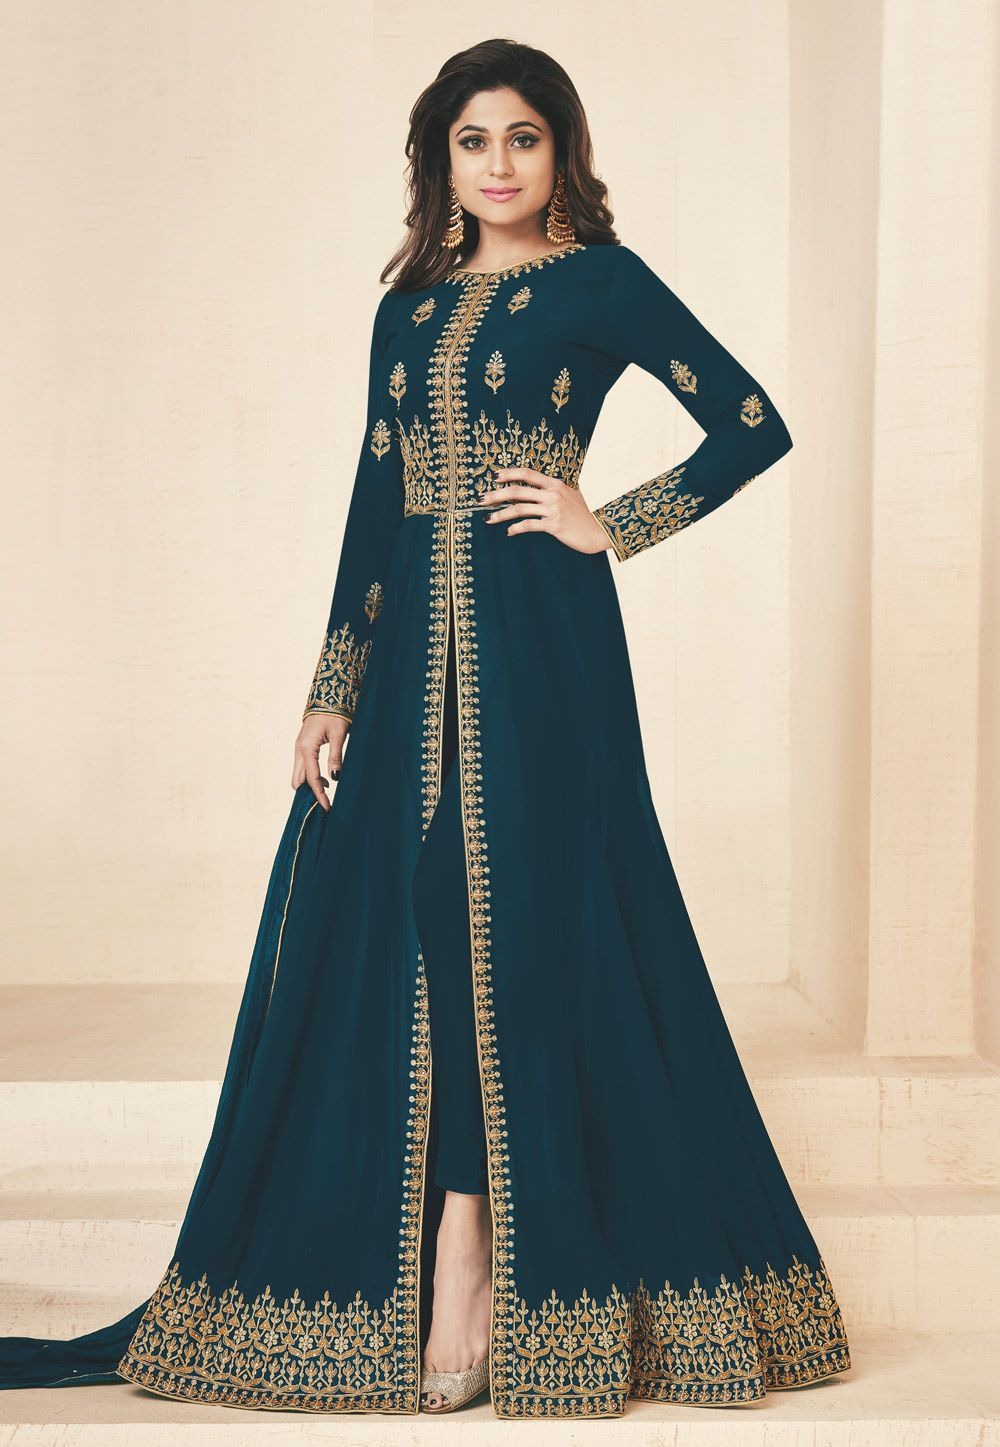 f18f1ed7c4 Buy Shamita Shetty Blue Georgette Bollywood Suit 157050 online at lowest  price from huge collection of salwar kameez at Indianclothstore.com.